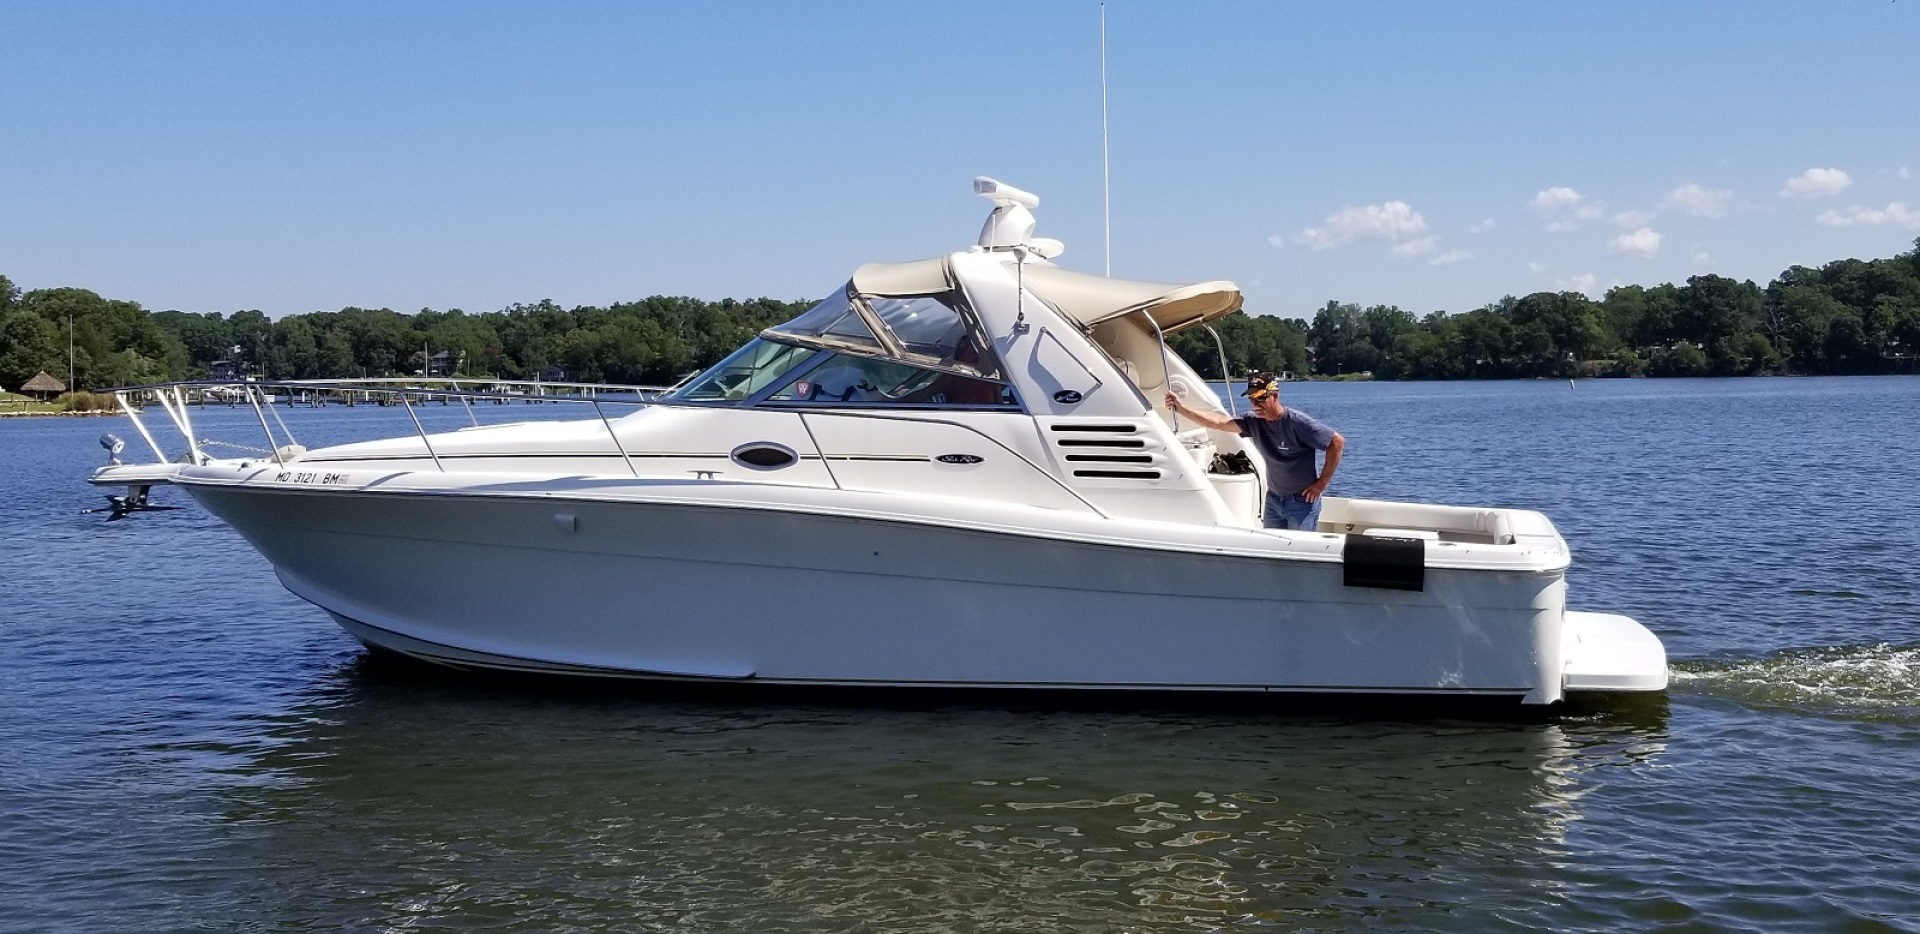 Sea Ray Boats for Sale - New & Used 710 as of Sunday, August